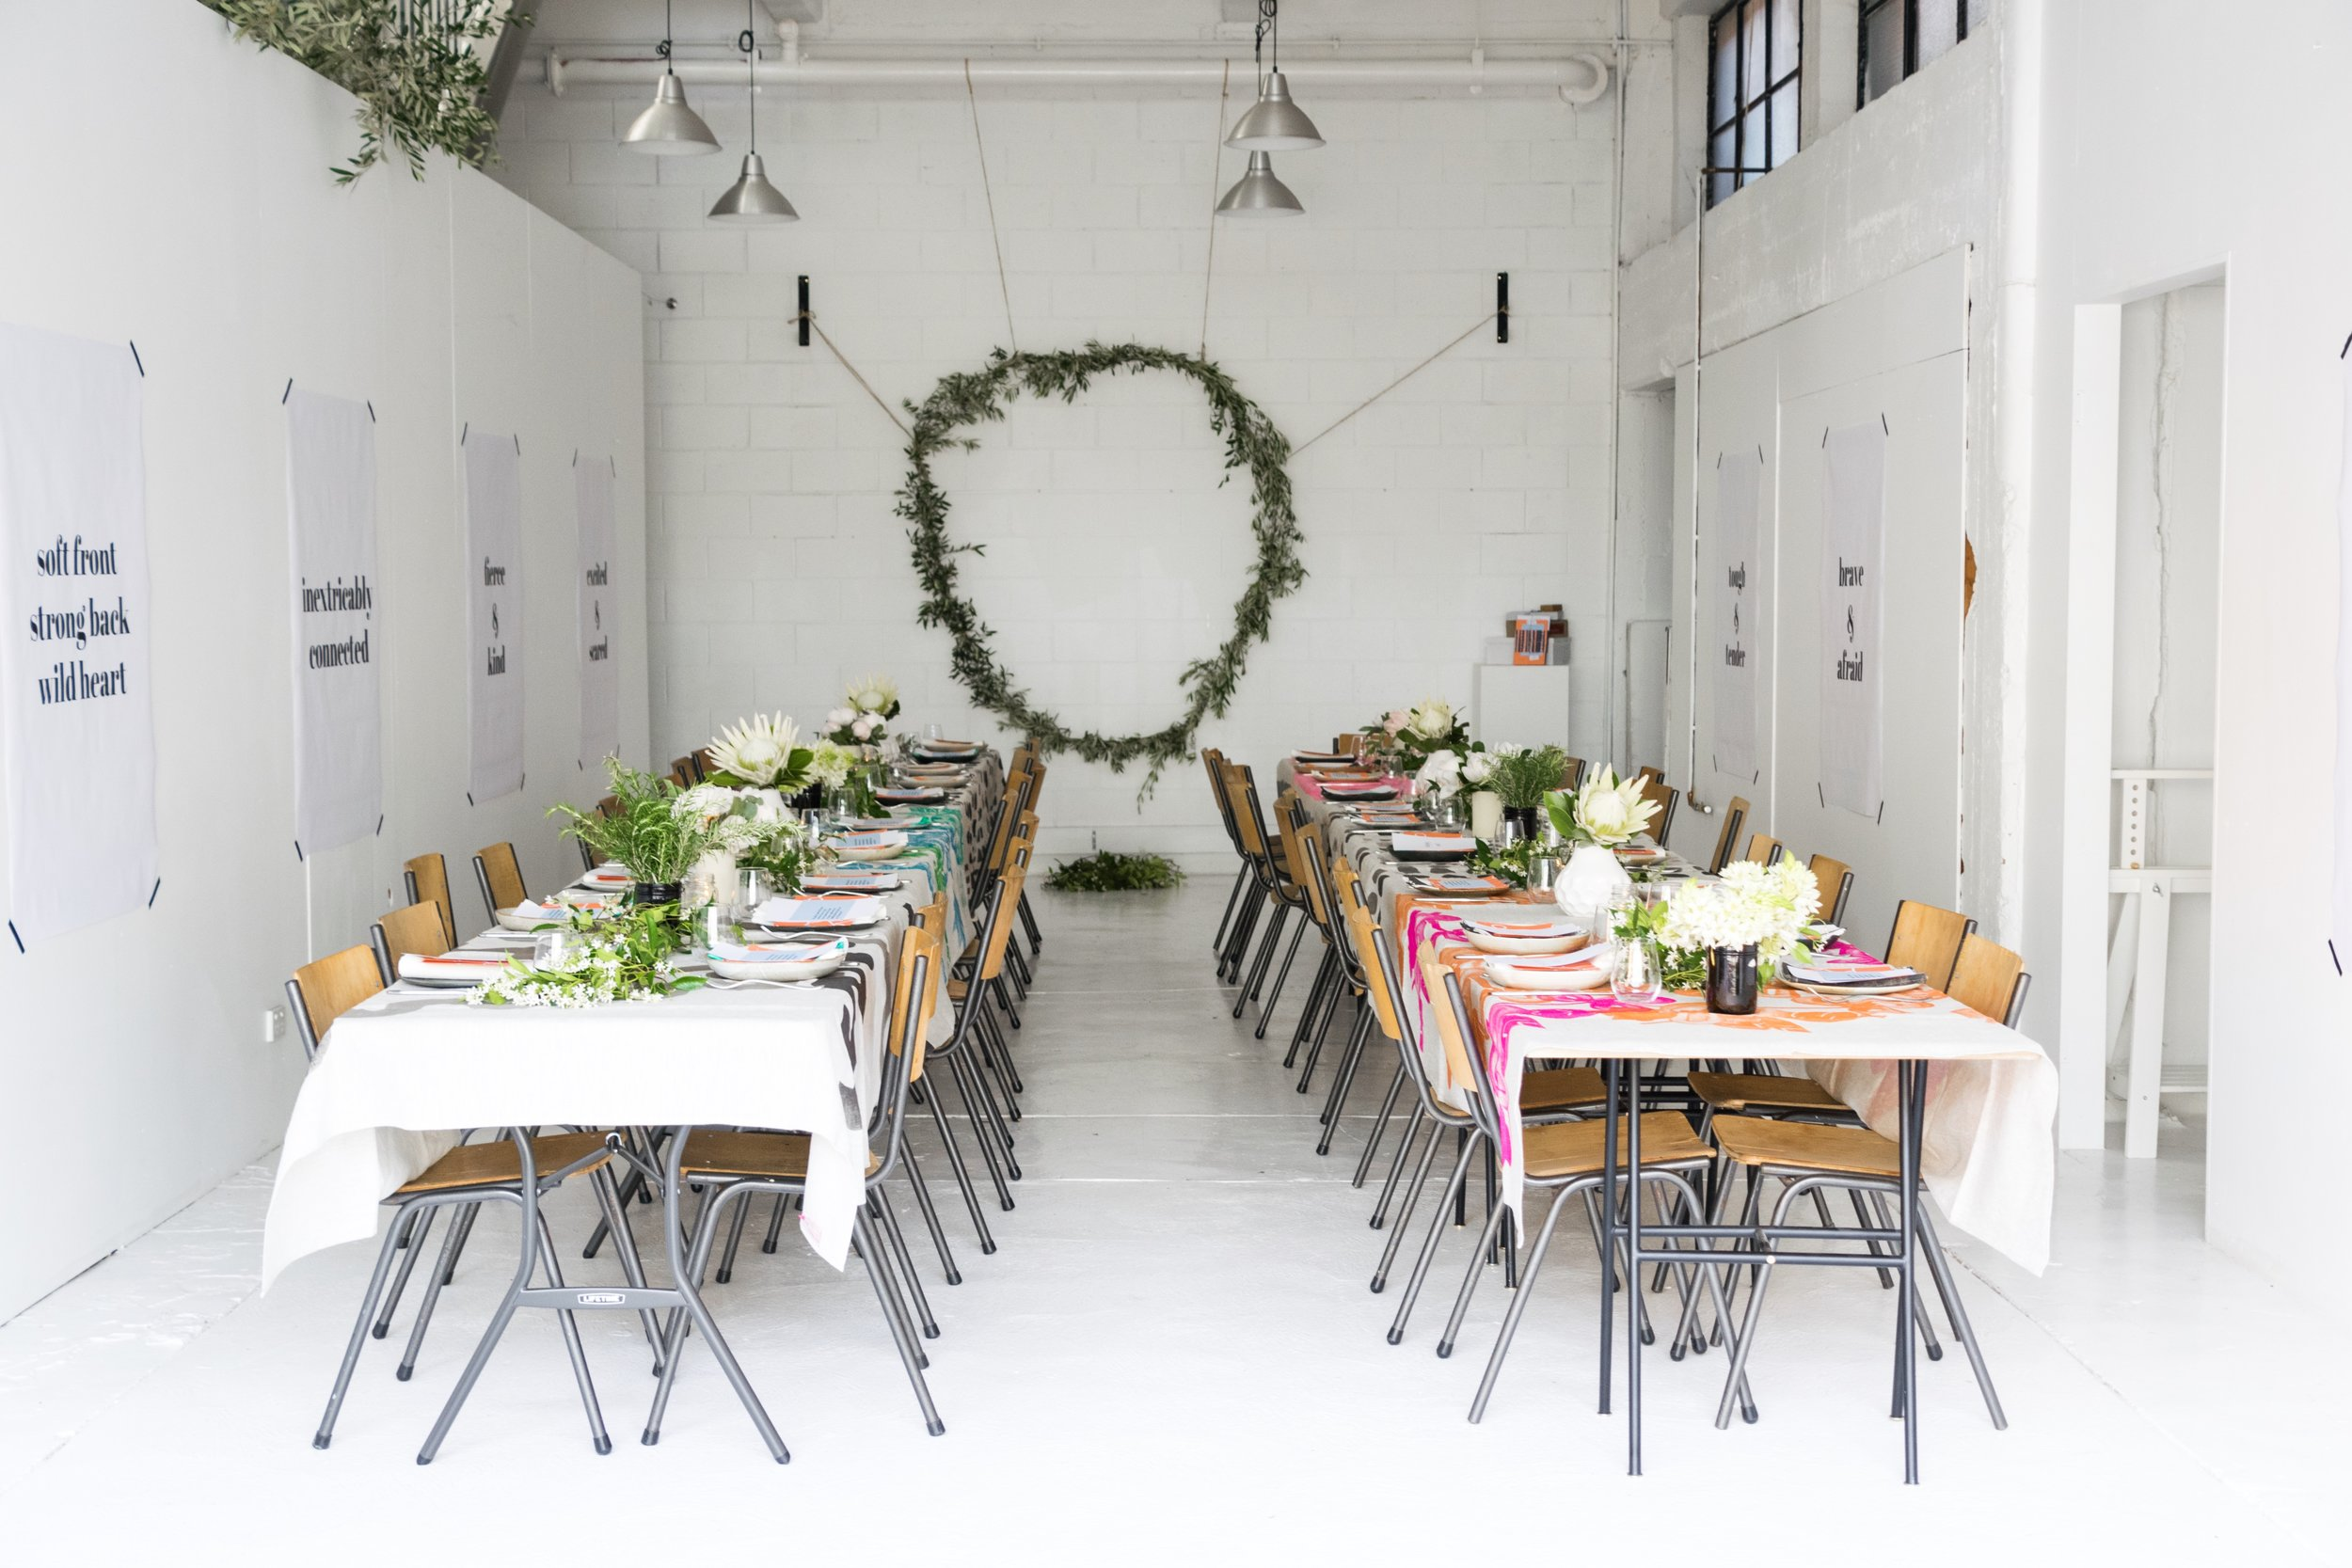 Bright, chic dining rooms set for 80 people for the Ofkin X Free to Feed Give Thanks Dinner.